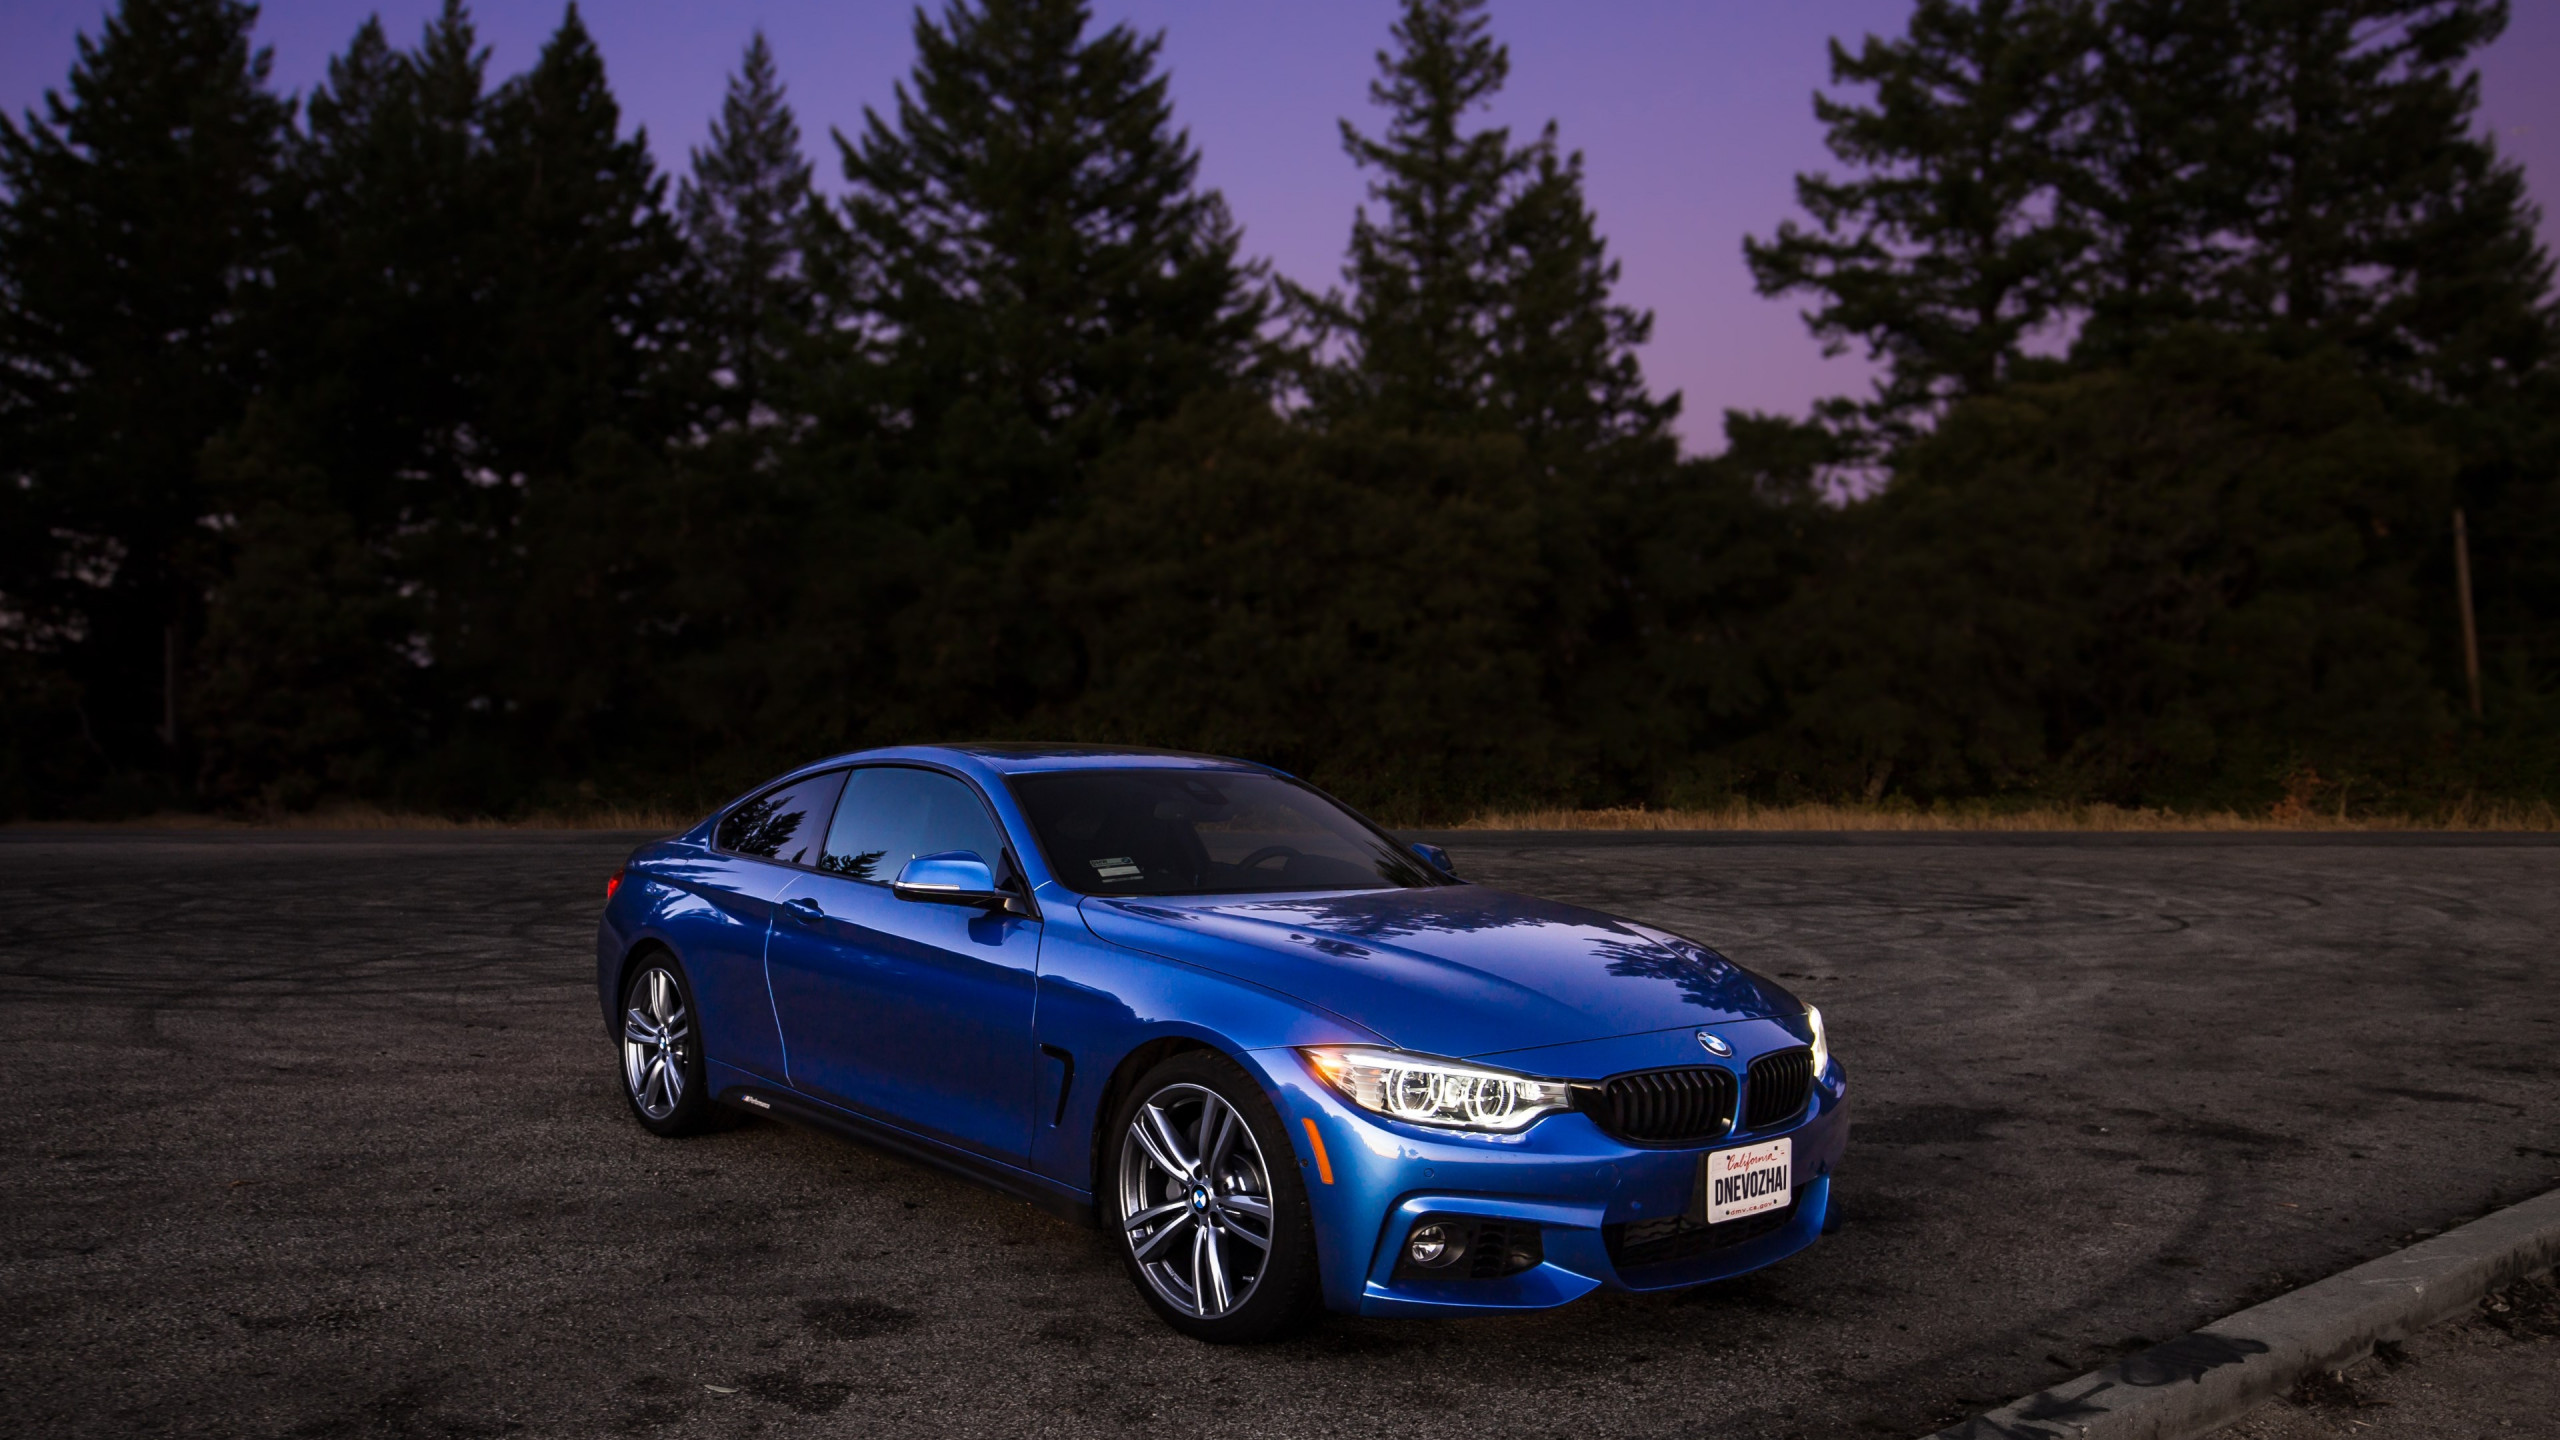 BMW 440i M wallpaper 2560x1440